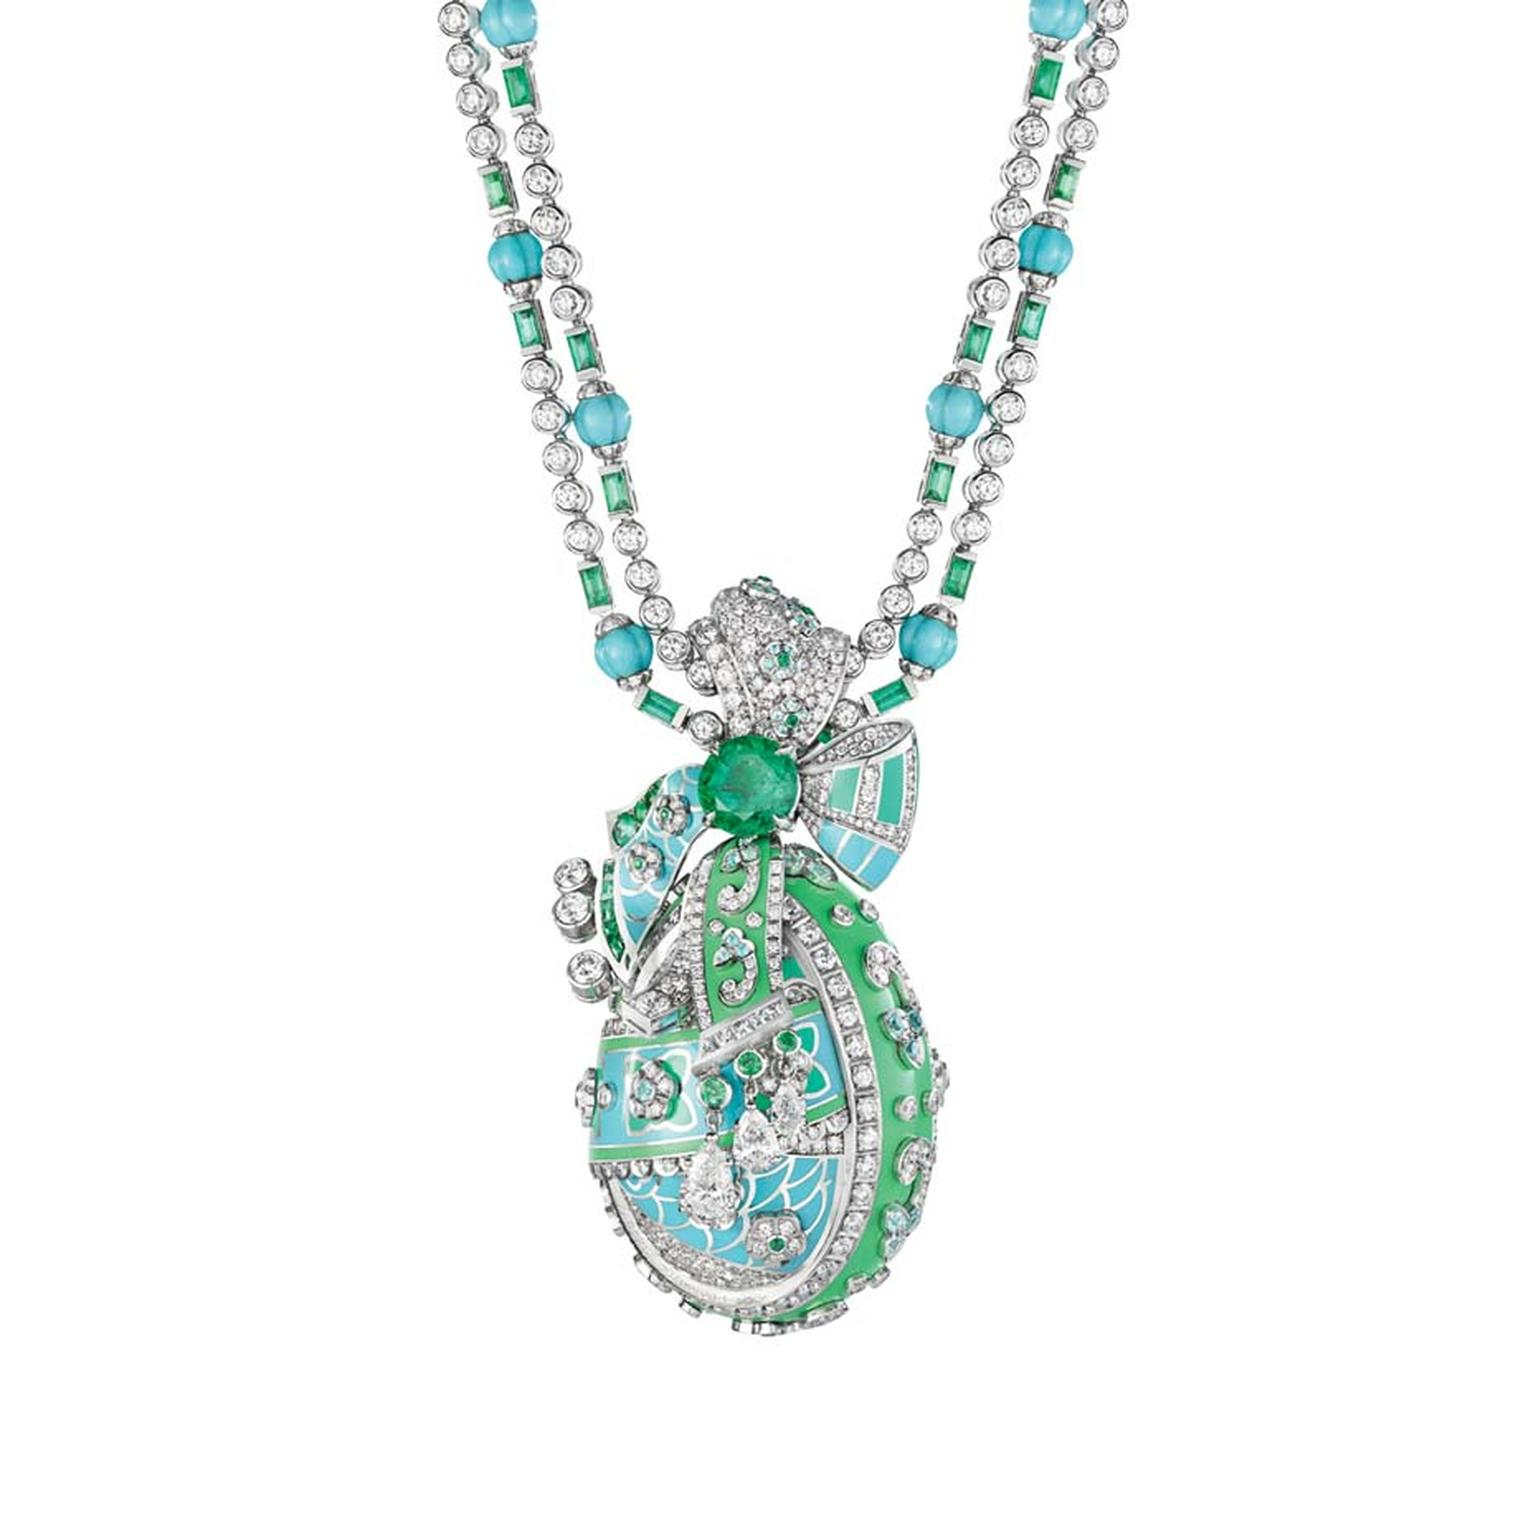 Fabergé necklace from the Summer in Provence high jewelry collection, set with emeralds, turquoise beads and diamonds, holding a detachable Fabergé egg embellished with floral motifs.